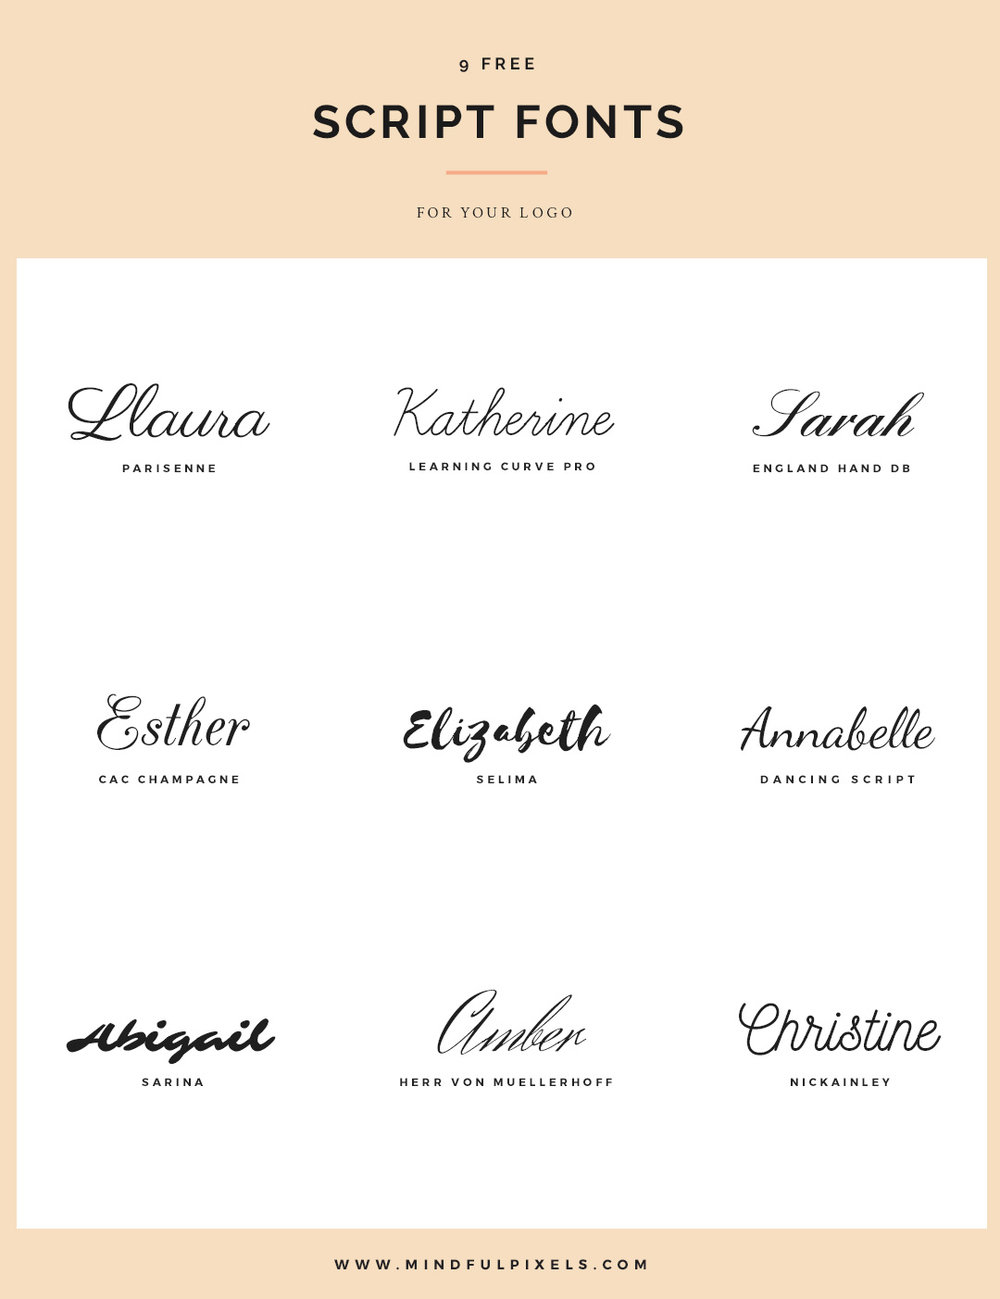 9 Free script fonts for your logo